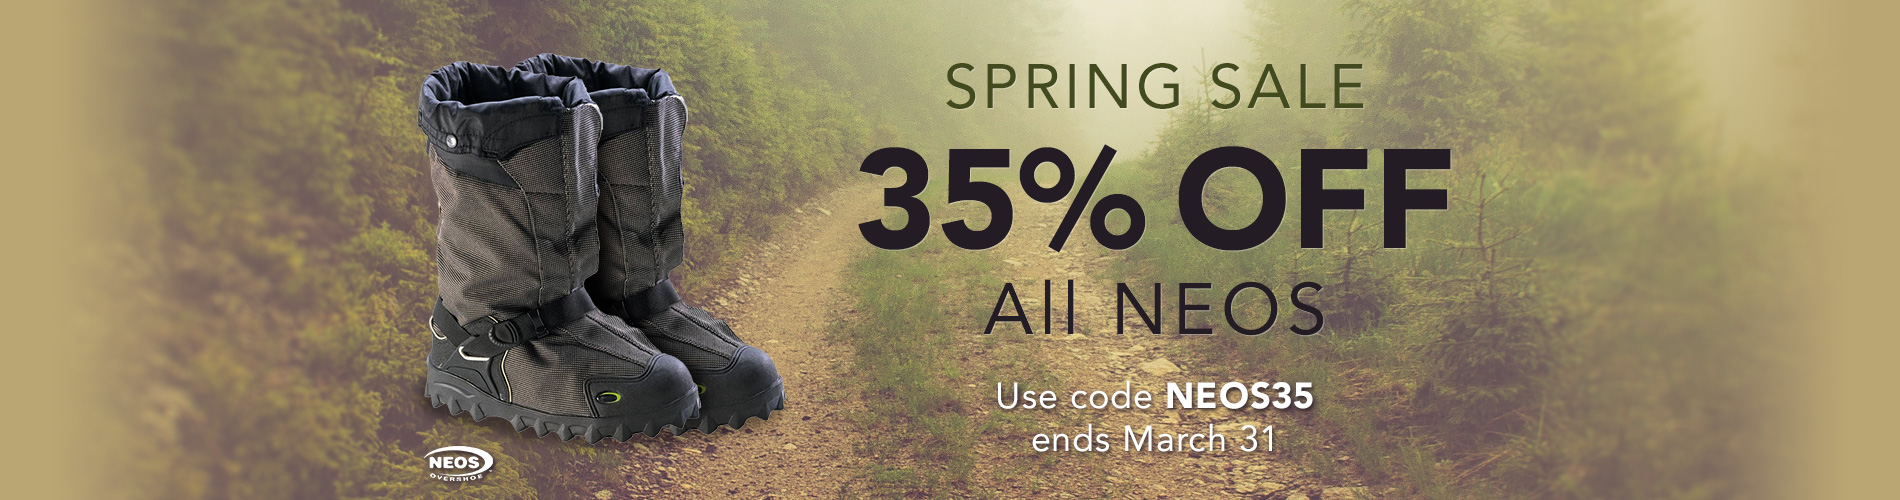 Spring Sale - 35% Off All NEOS Overshoes. Use code NEOS35 at checkout. Ends March 31.